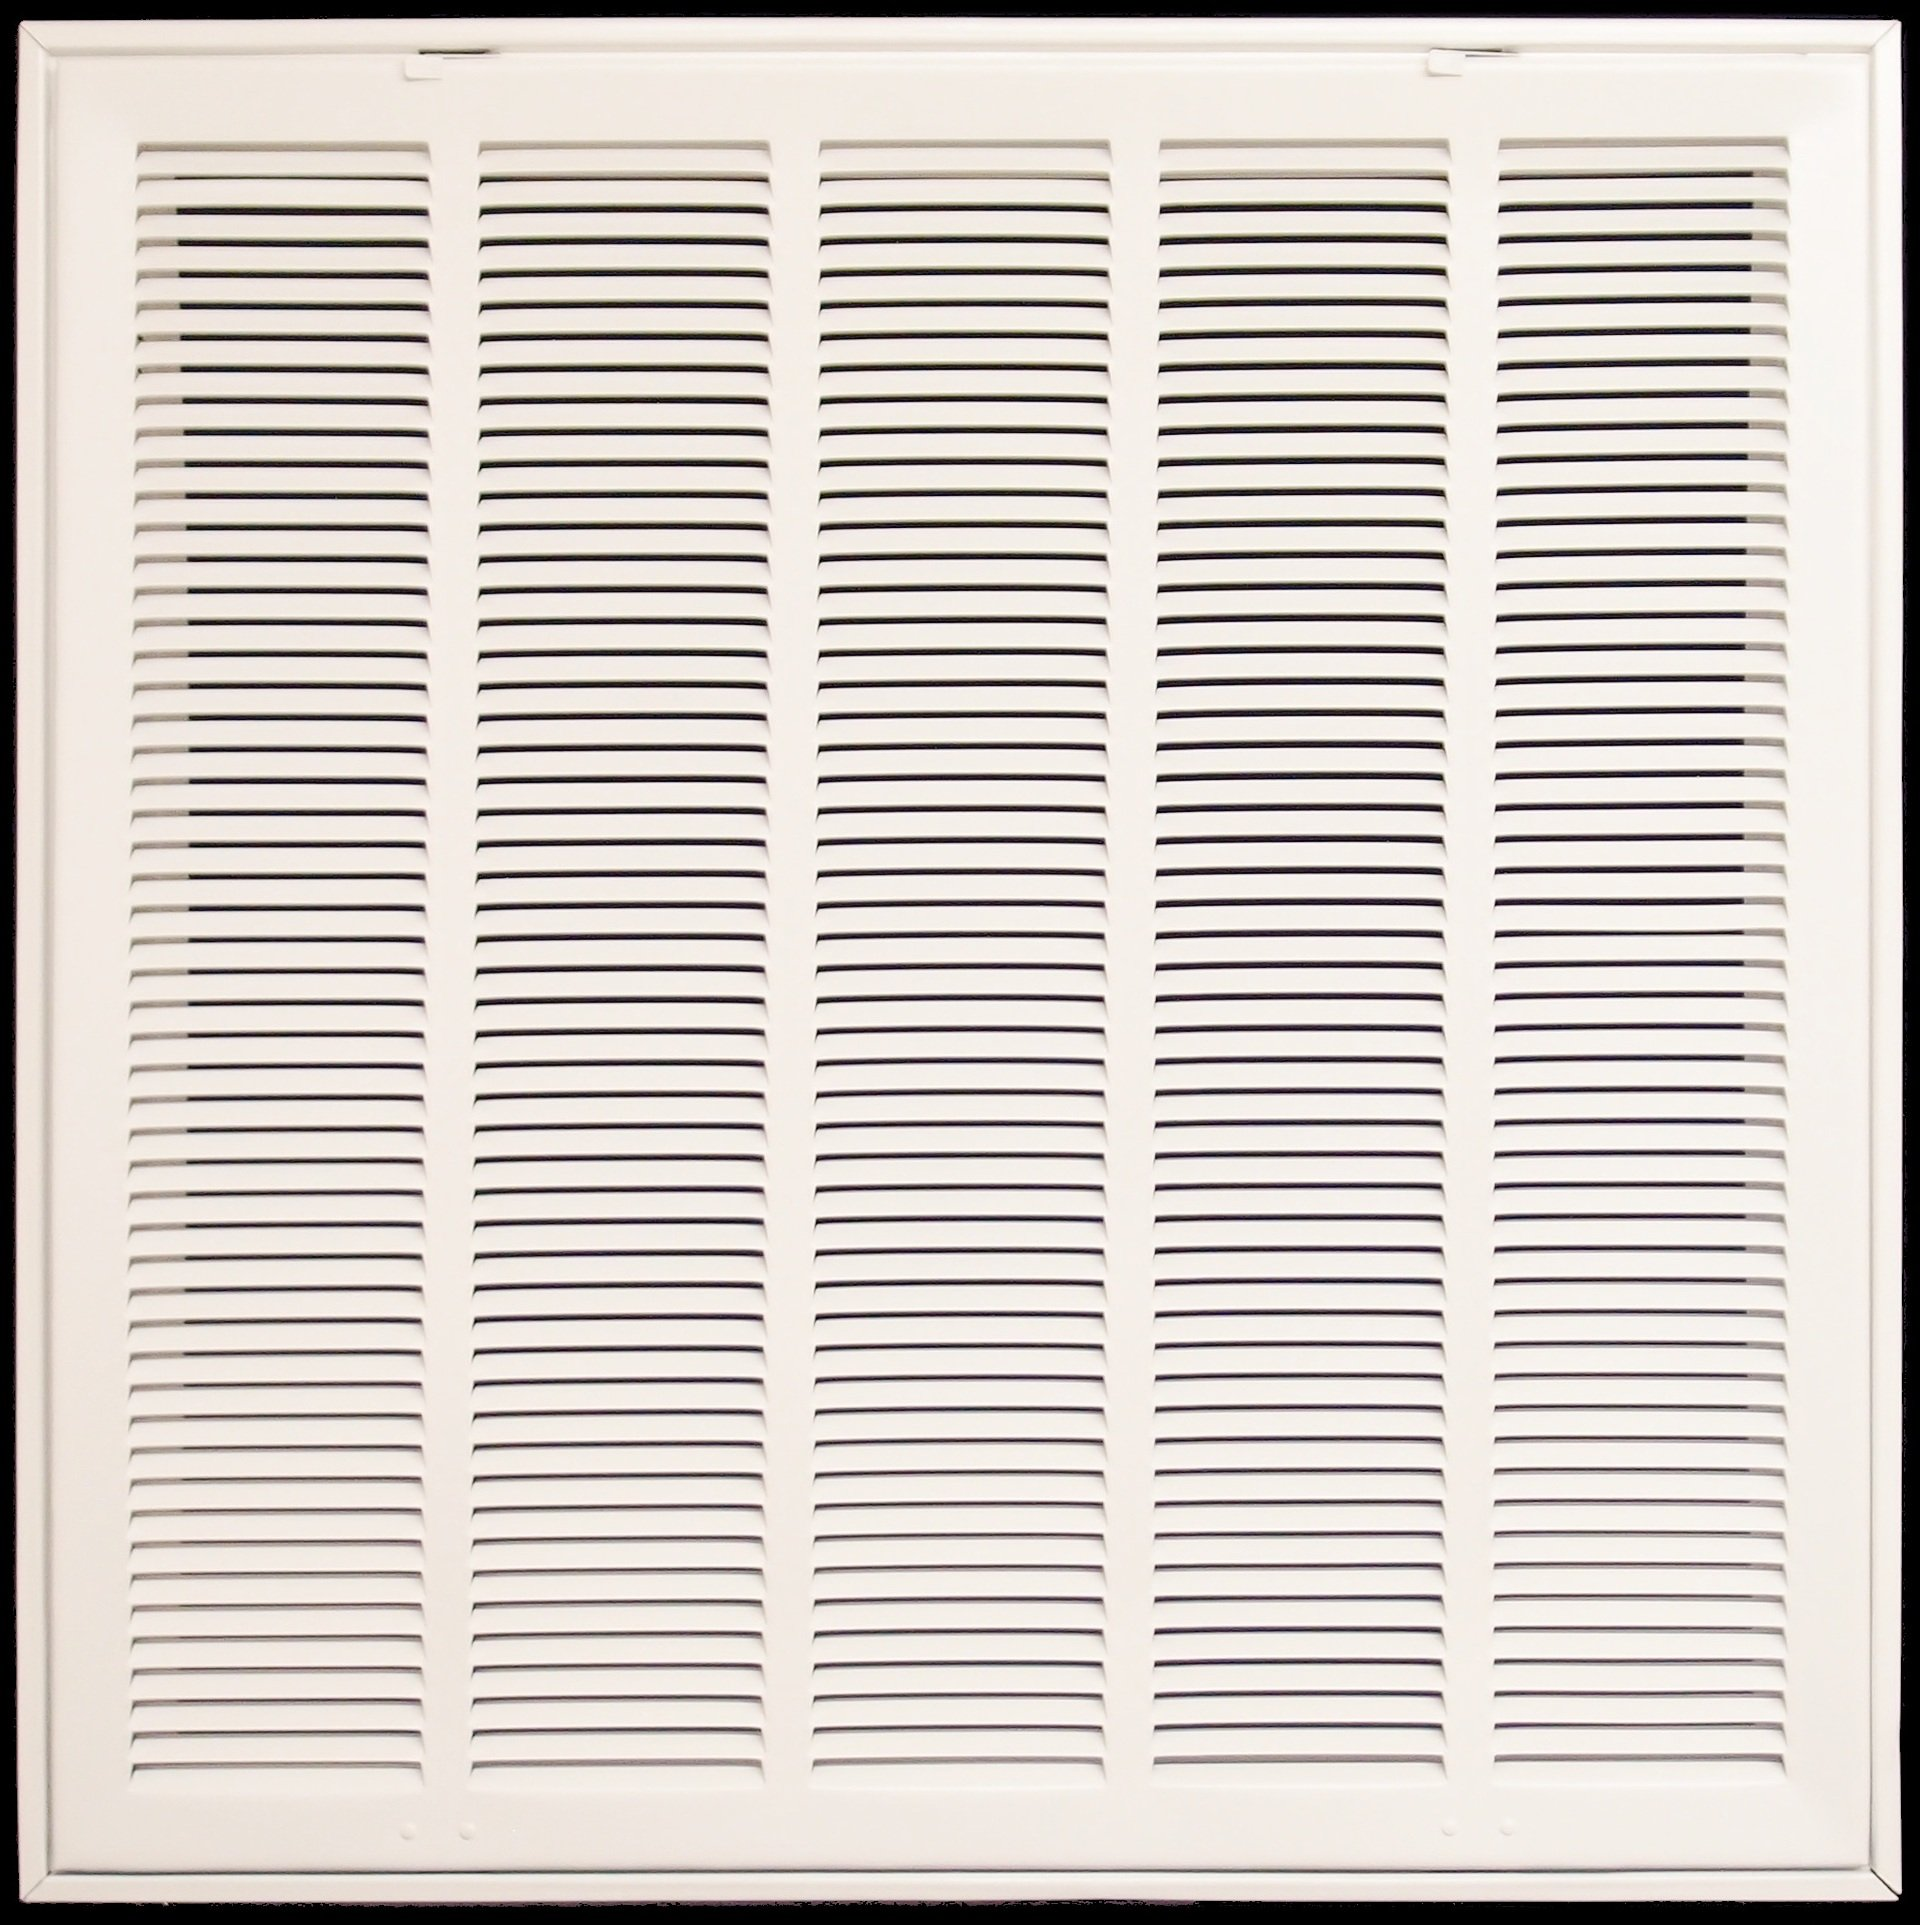 25'' X 32 Steel Return Air Filter Grille for 1'' Filter - Removable Face/Door - HVAC DUCT COVER - Flat Stamped Face - White [Outer Dimensions: 27.5''w X 34.5''h]